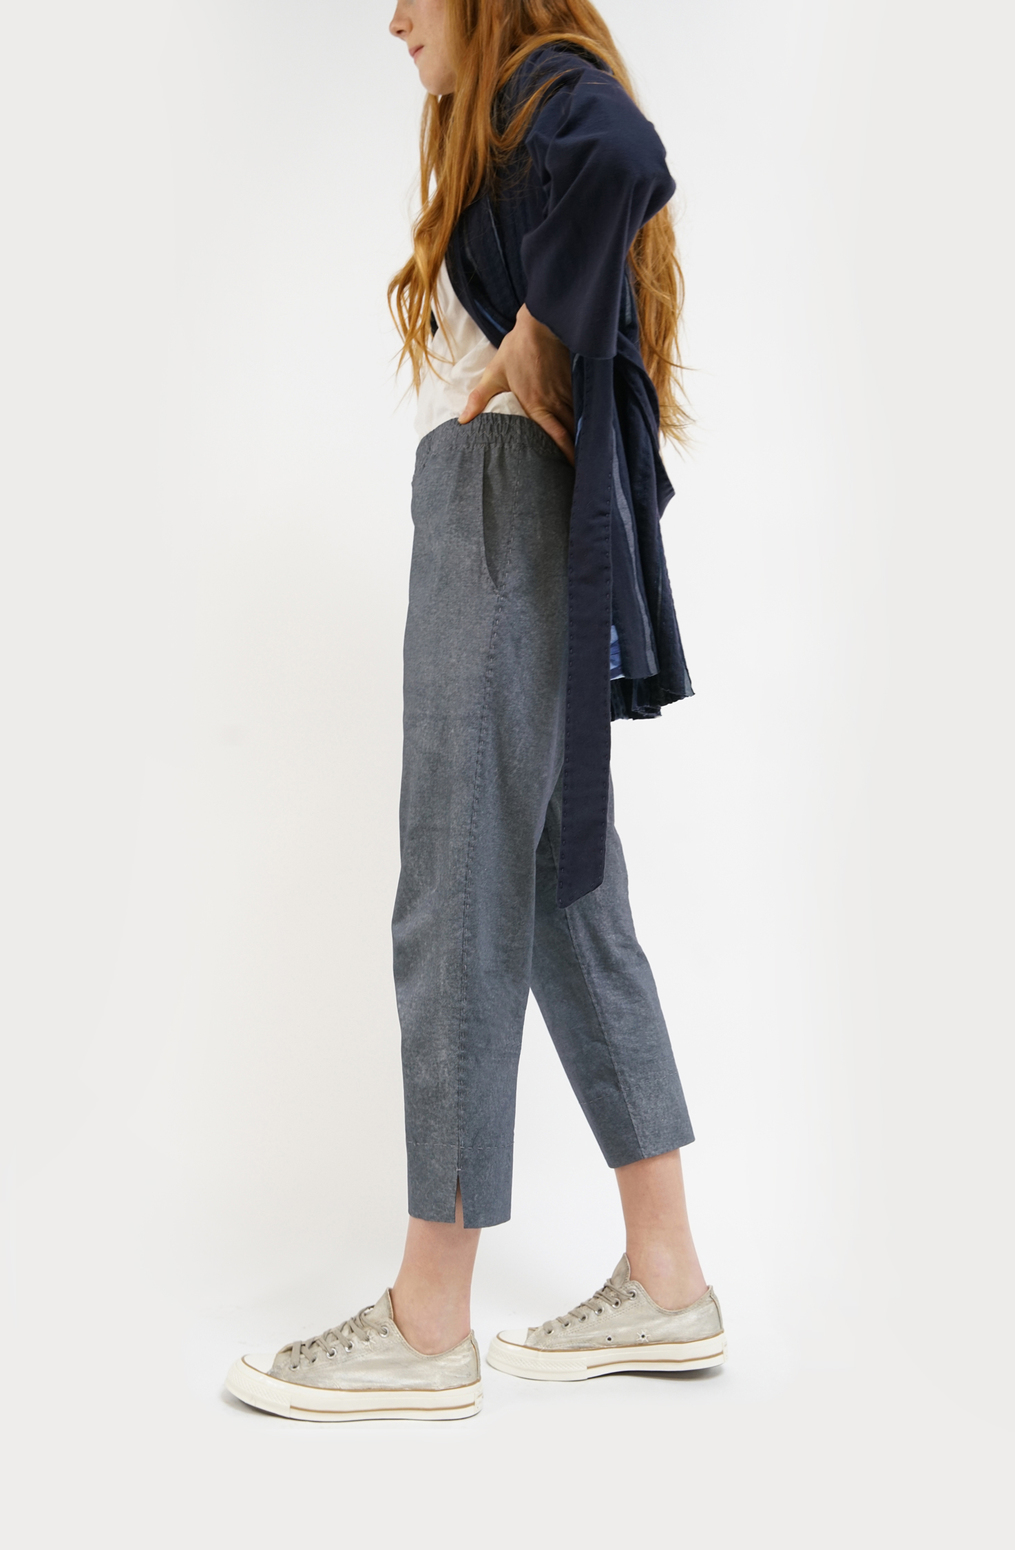 Alabama chanin essential crop pant5